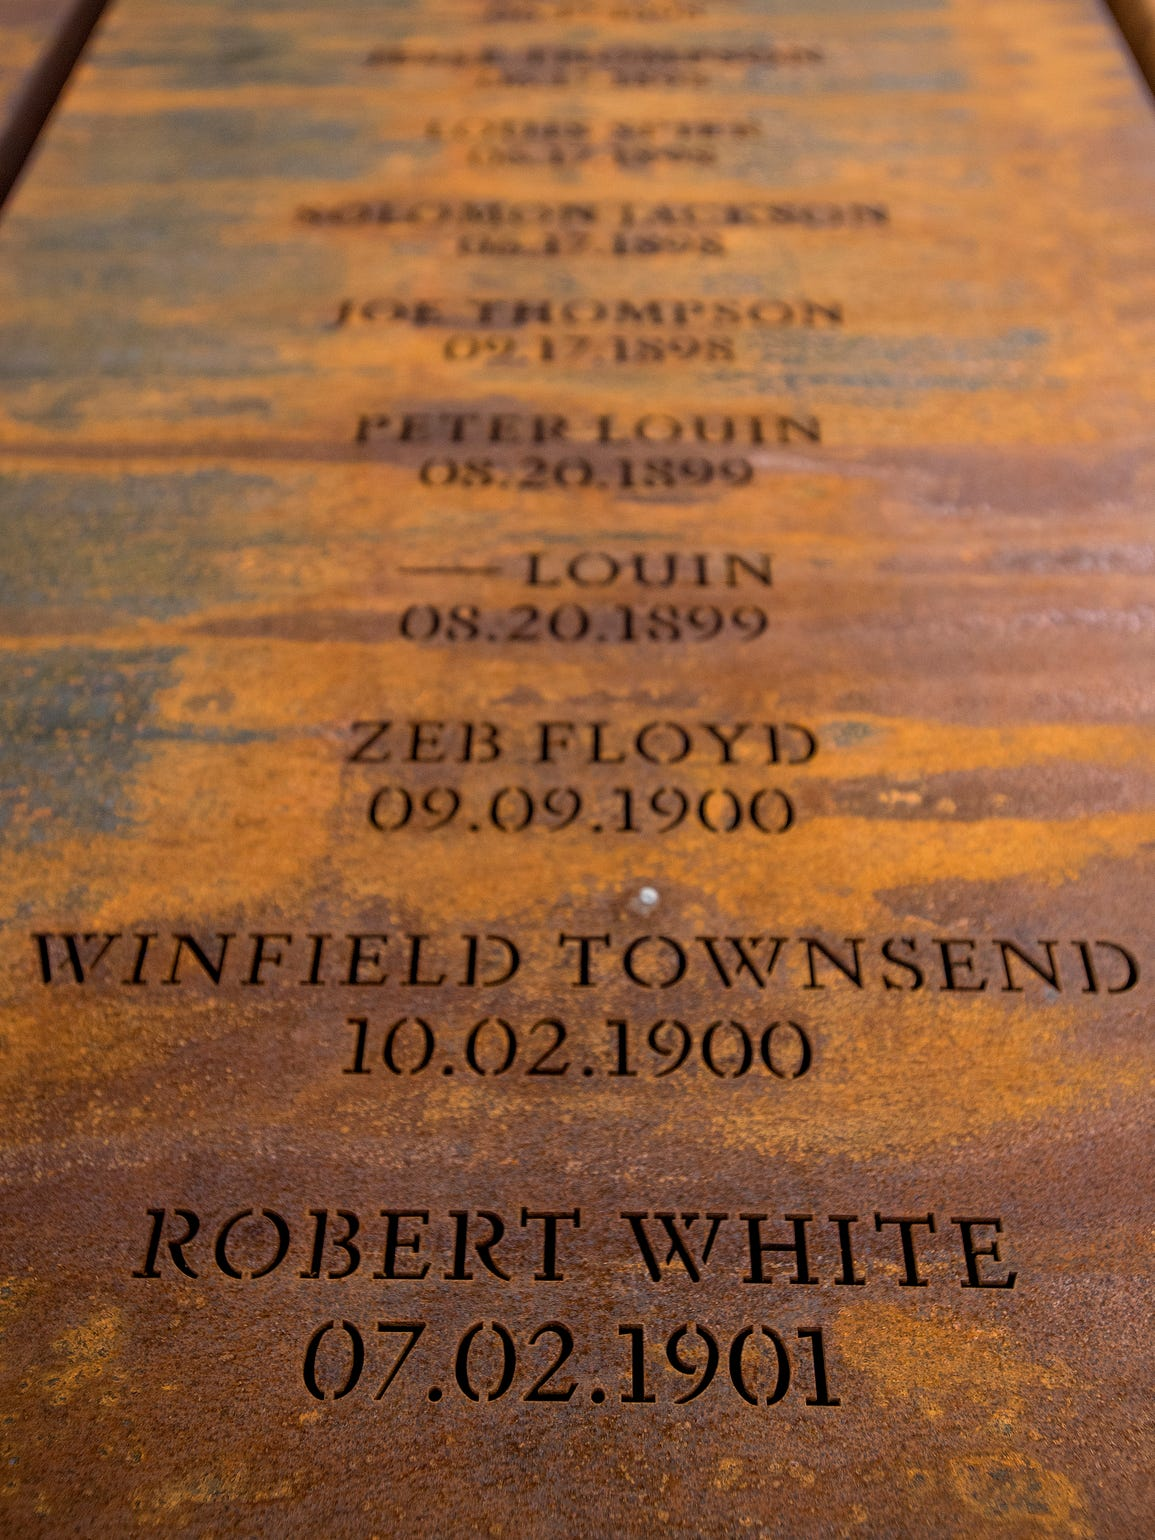 "One of the pillars at EJI's lynching memorial shows the name of Robert White. The 1900 Census listed him as Robert White as Robin. Most witnesses at the trials referred to him by that name, as did accounts of the murder after the sentencing. But the coverage immediately following the lynching called him Robert, as did a handful of witnesses. His brother Abe, who would play a major role in the events before and after the lynching, used both ""Robin"" and ""Robert"" in a letter dictated in 1902, suggesting, perhaps, that Robin was a nickname."